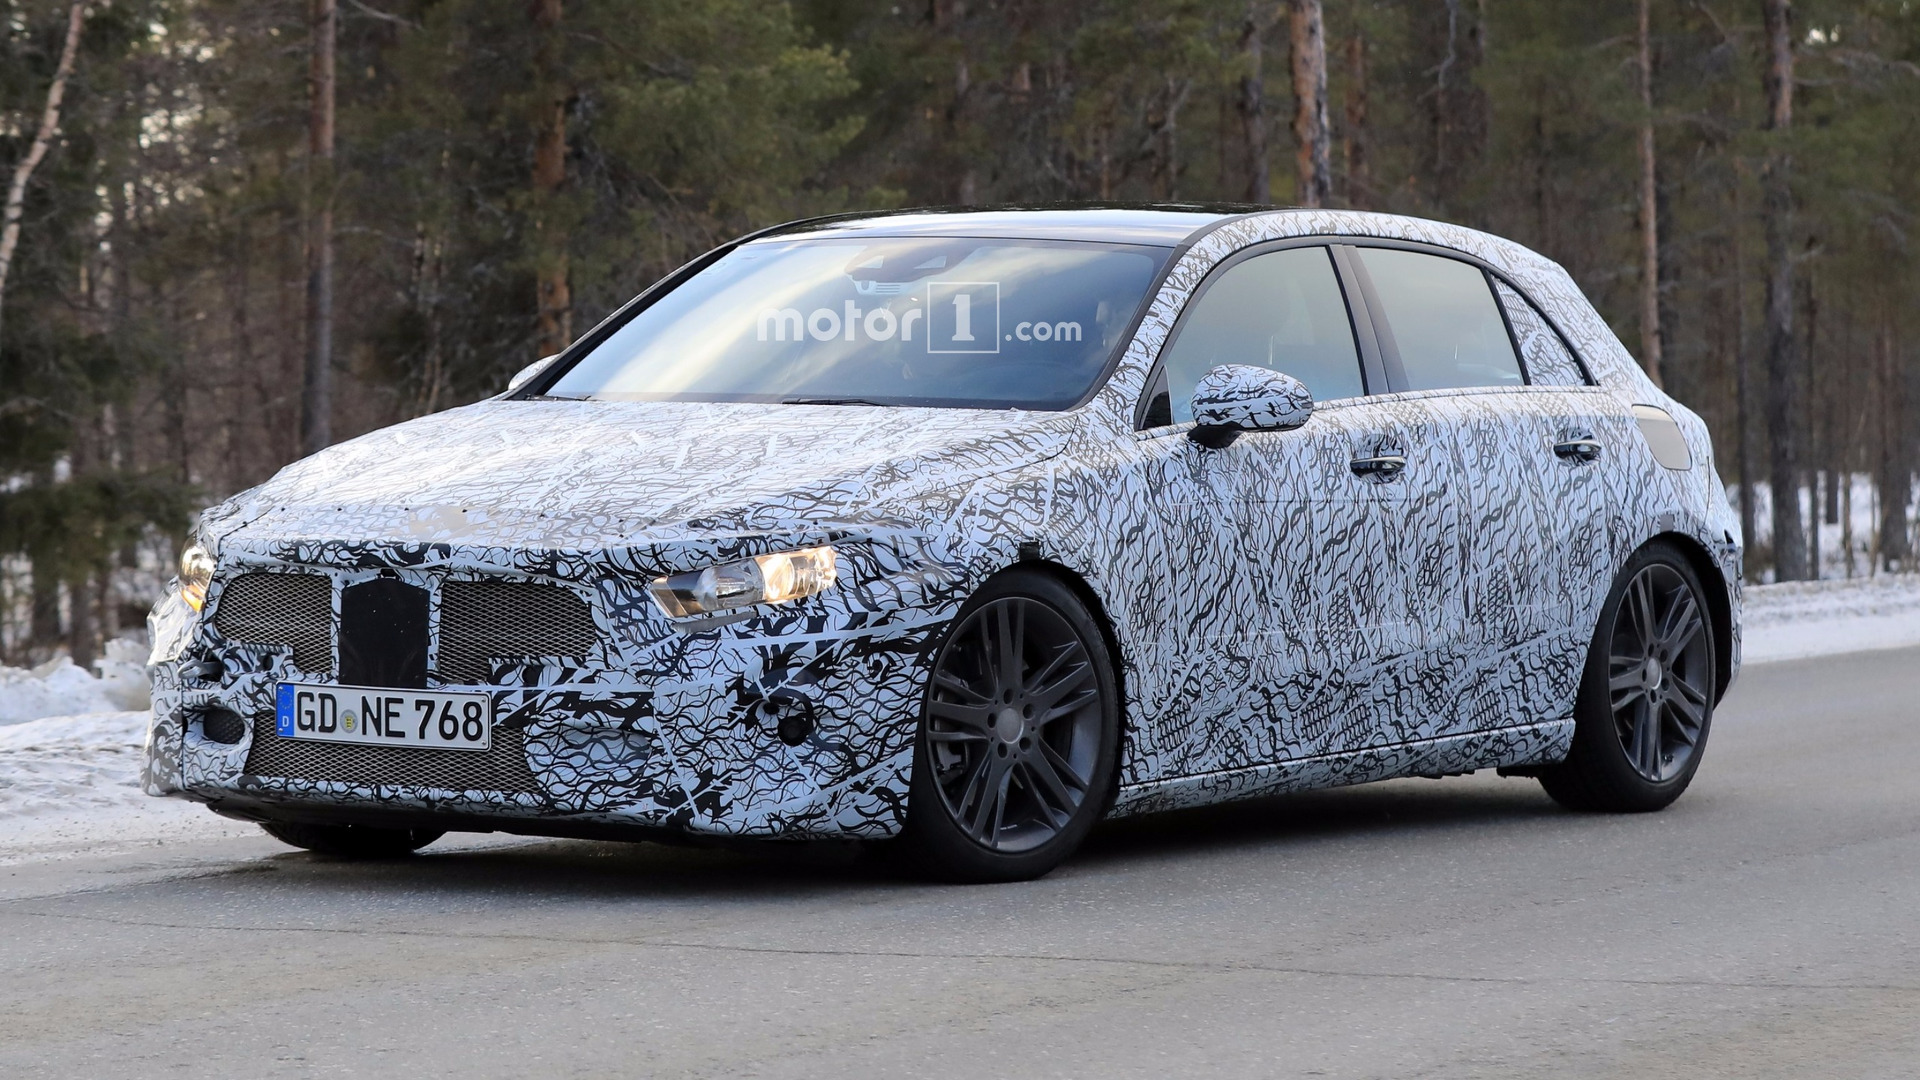 2018 mercedes a class rides low in new spy shots. Black Bedroom Furniture Sets. Home Design Ideas